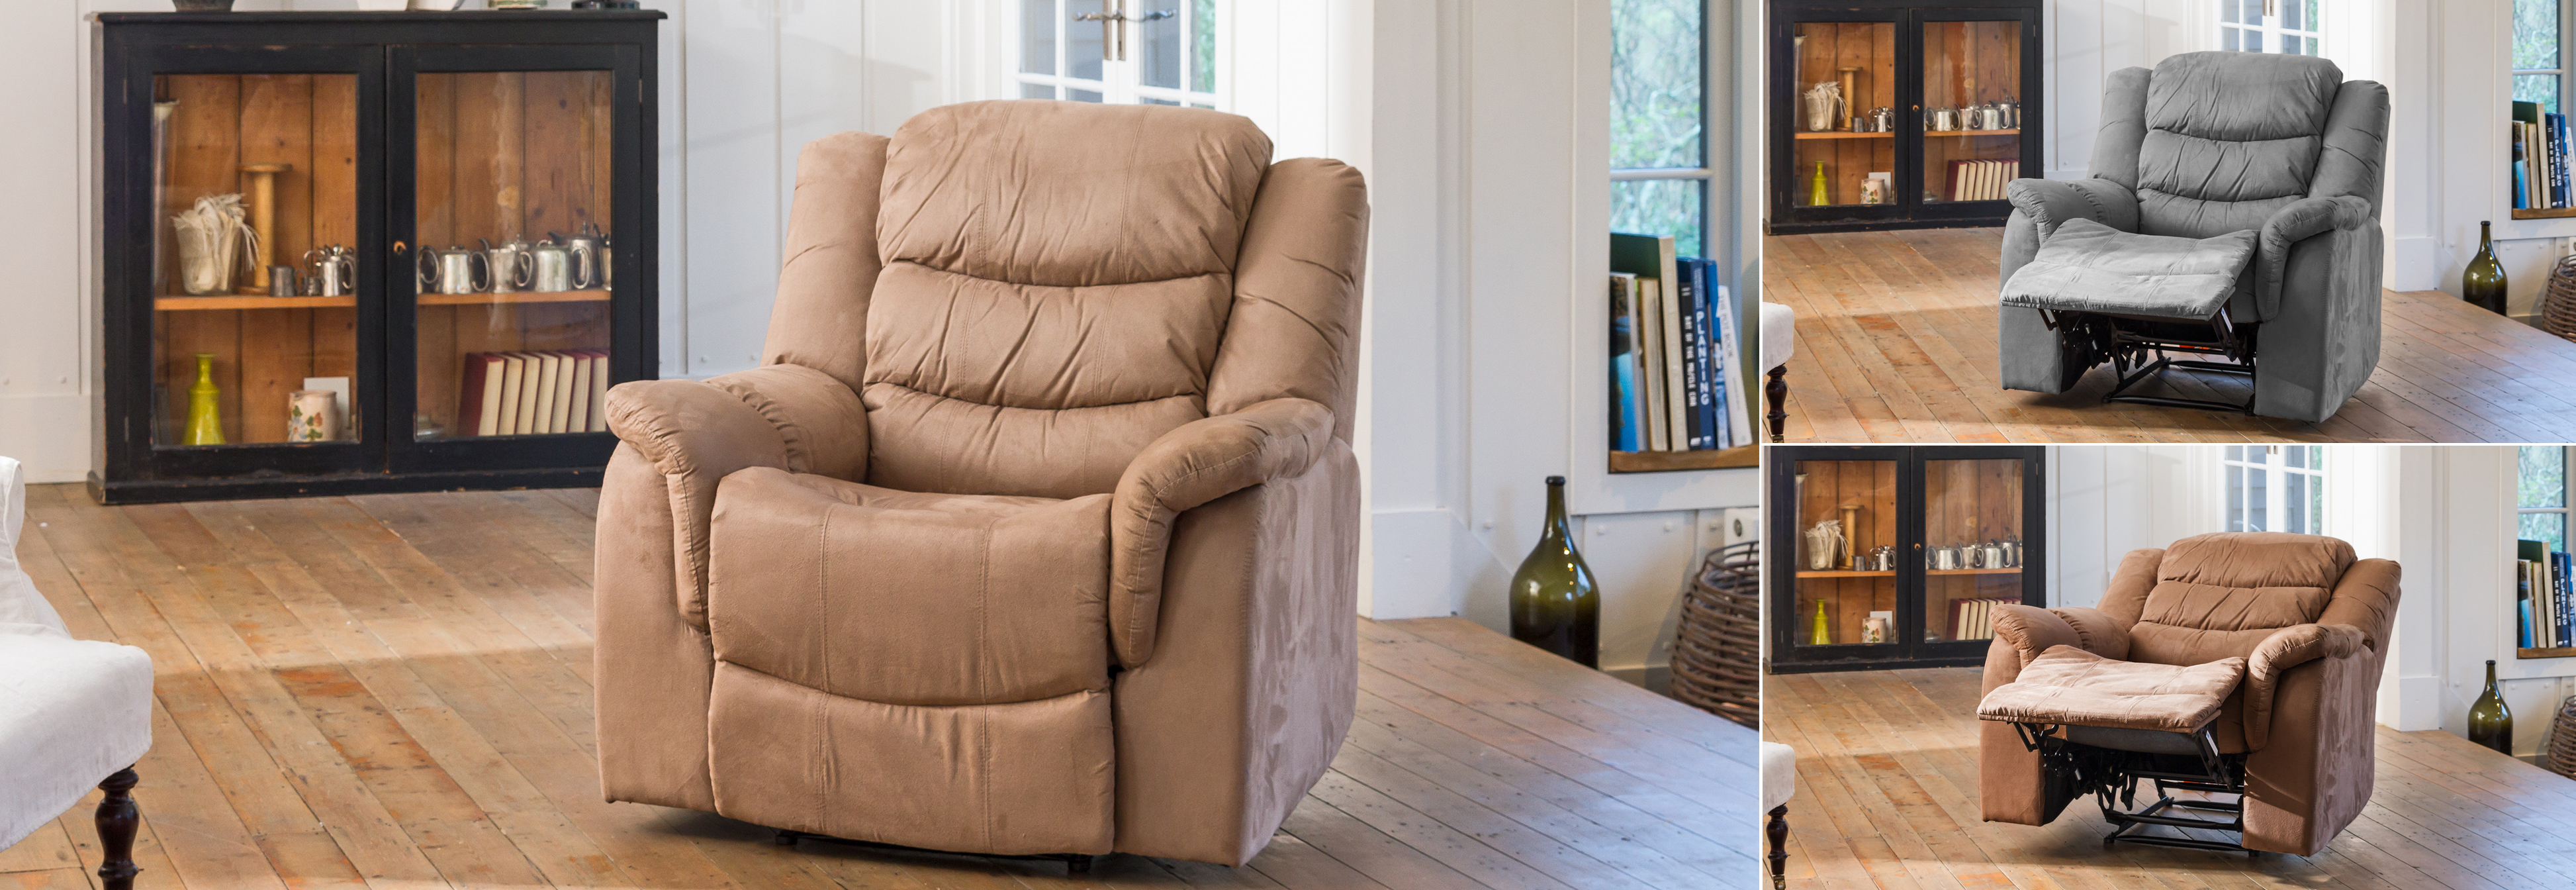 Asquith Electric Recliner light brown